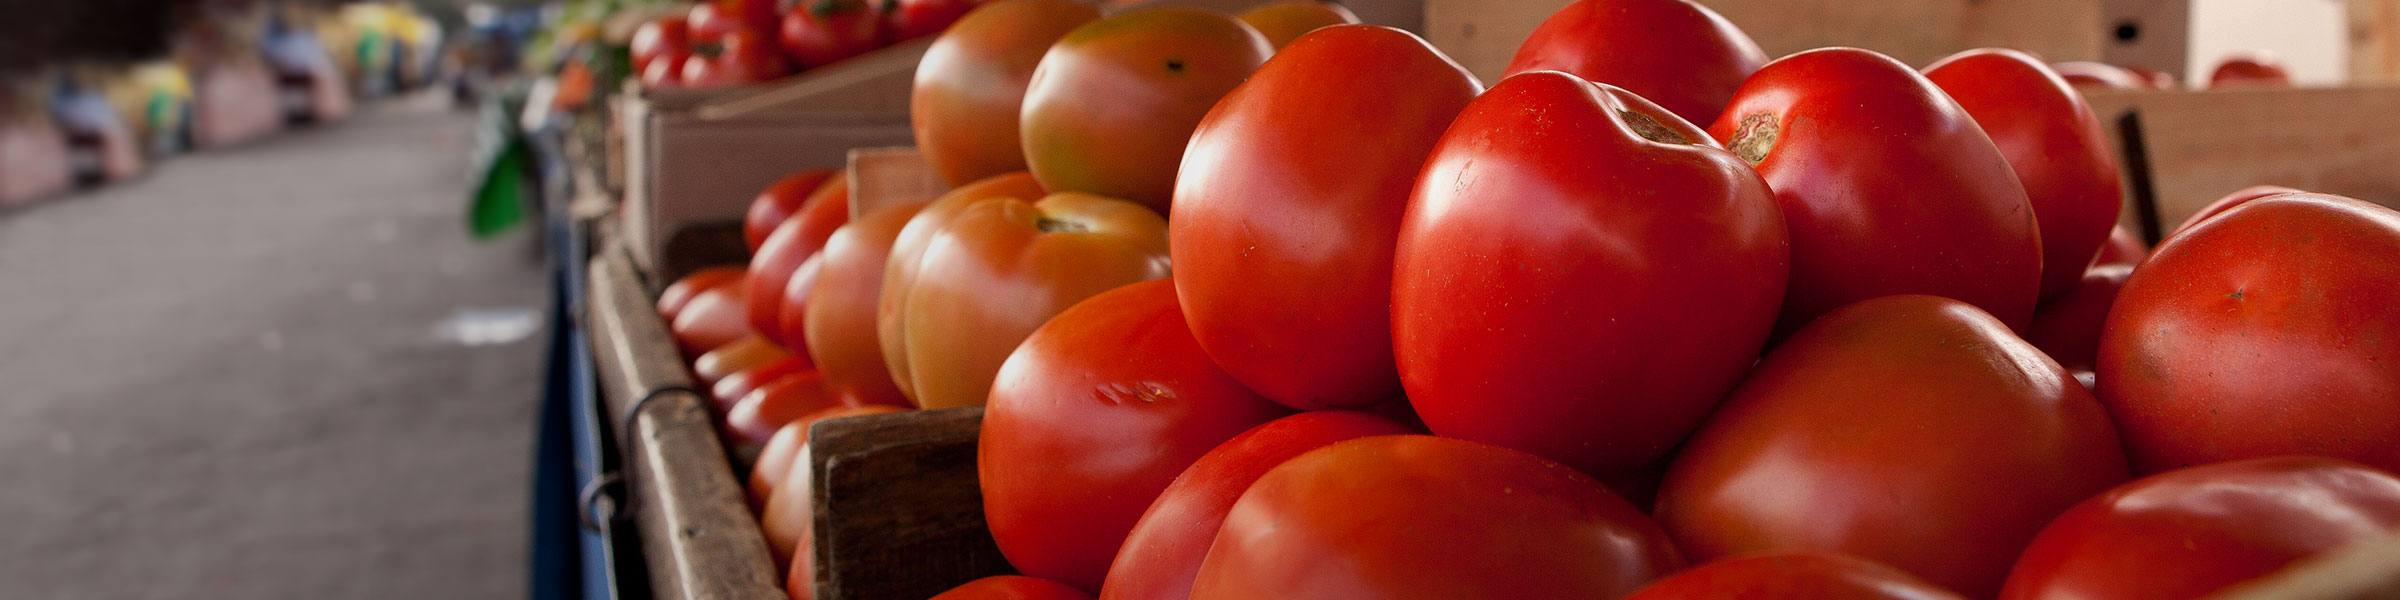 close-up of red tomatoes